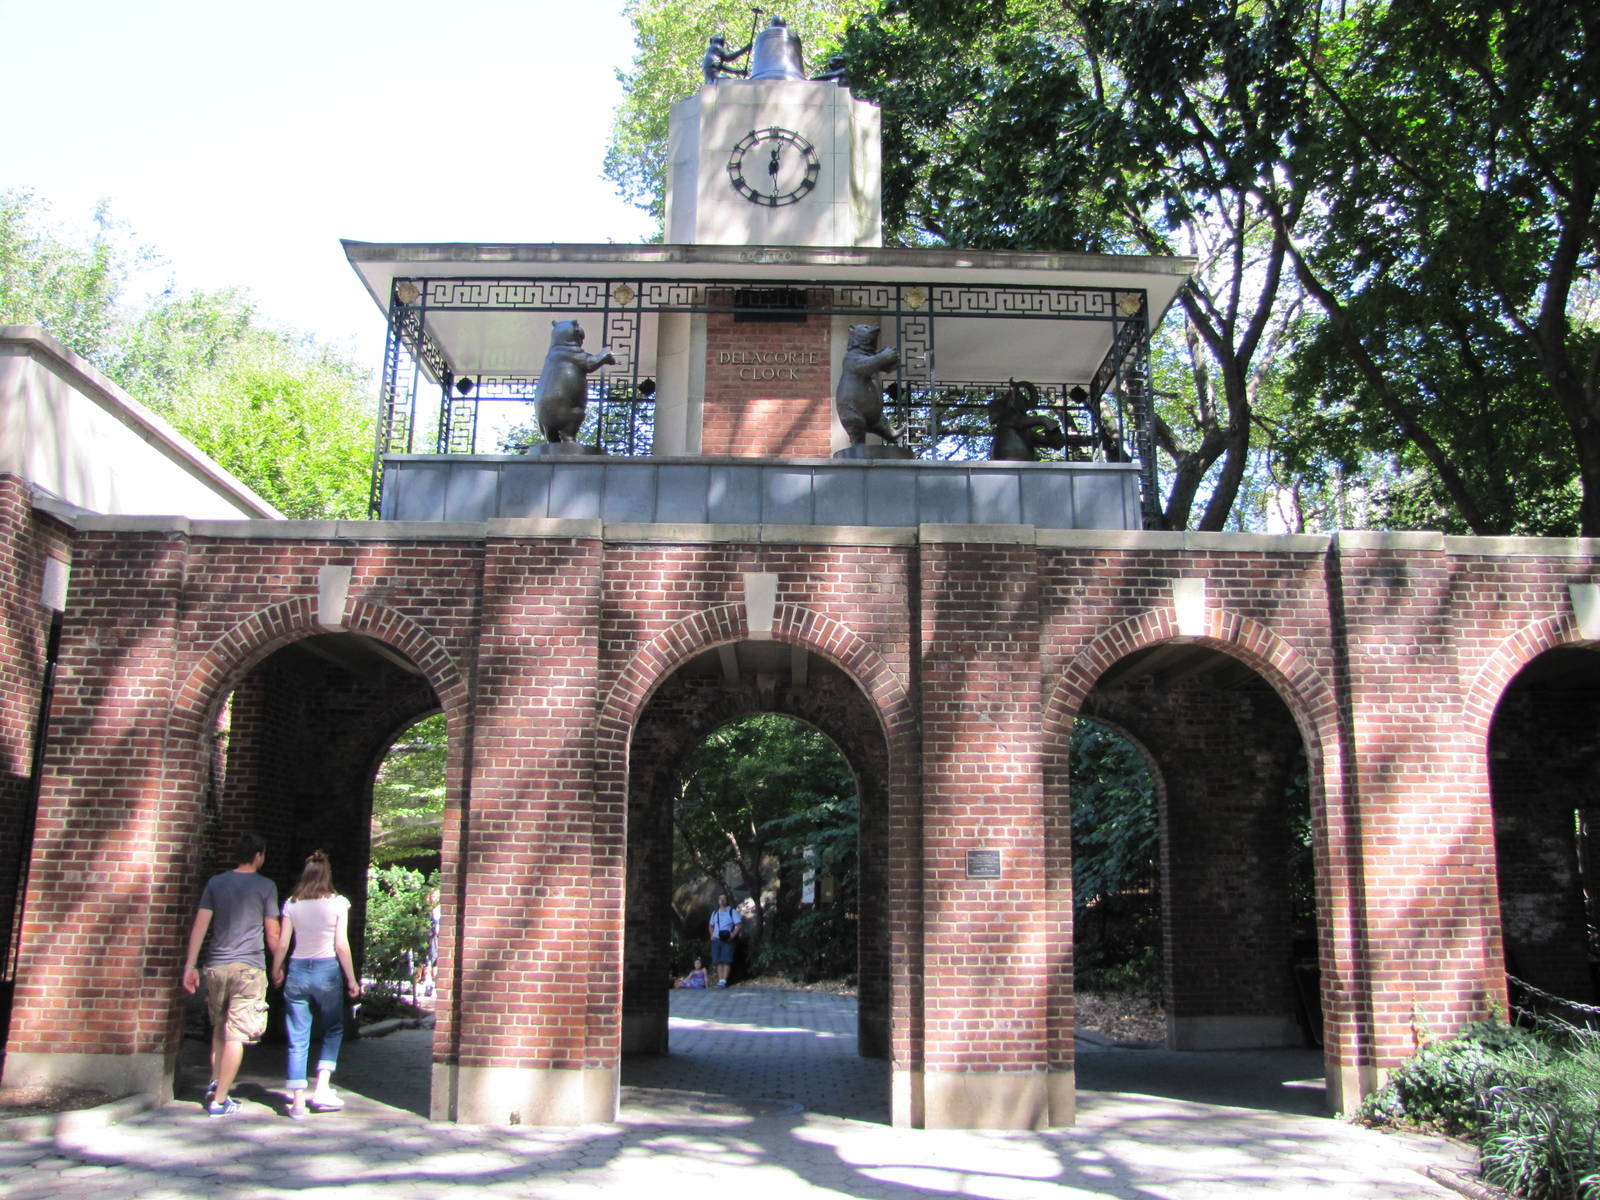 The Entrance to the Central Park Zoo